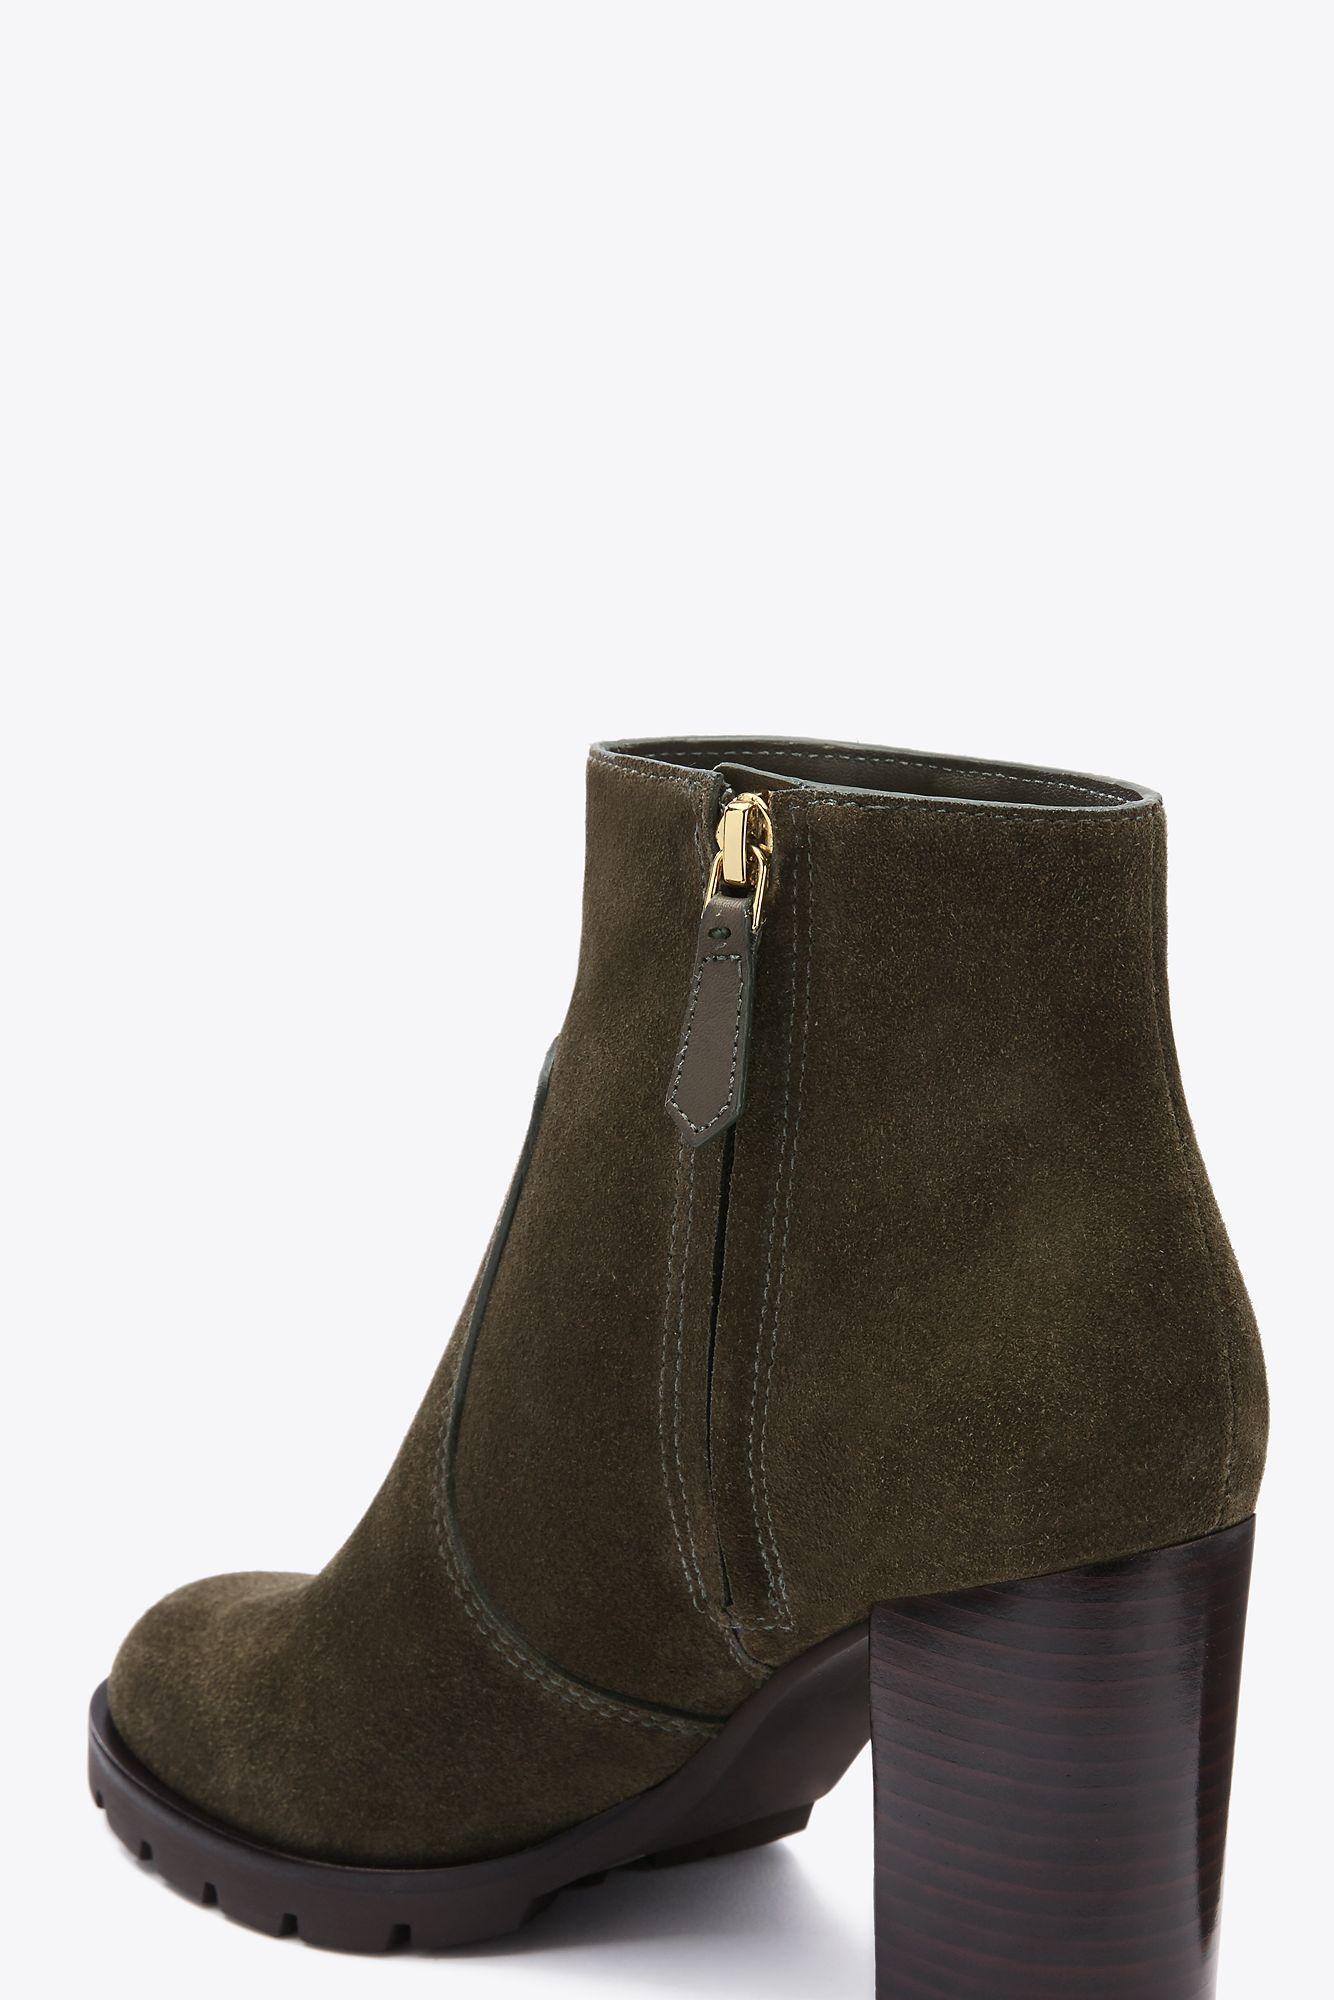 Lyst Tory Burch Sofia Lug Sole Bootie In Green